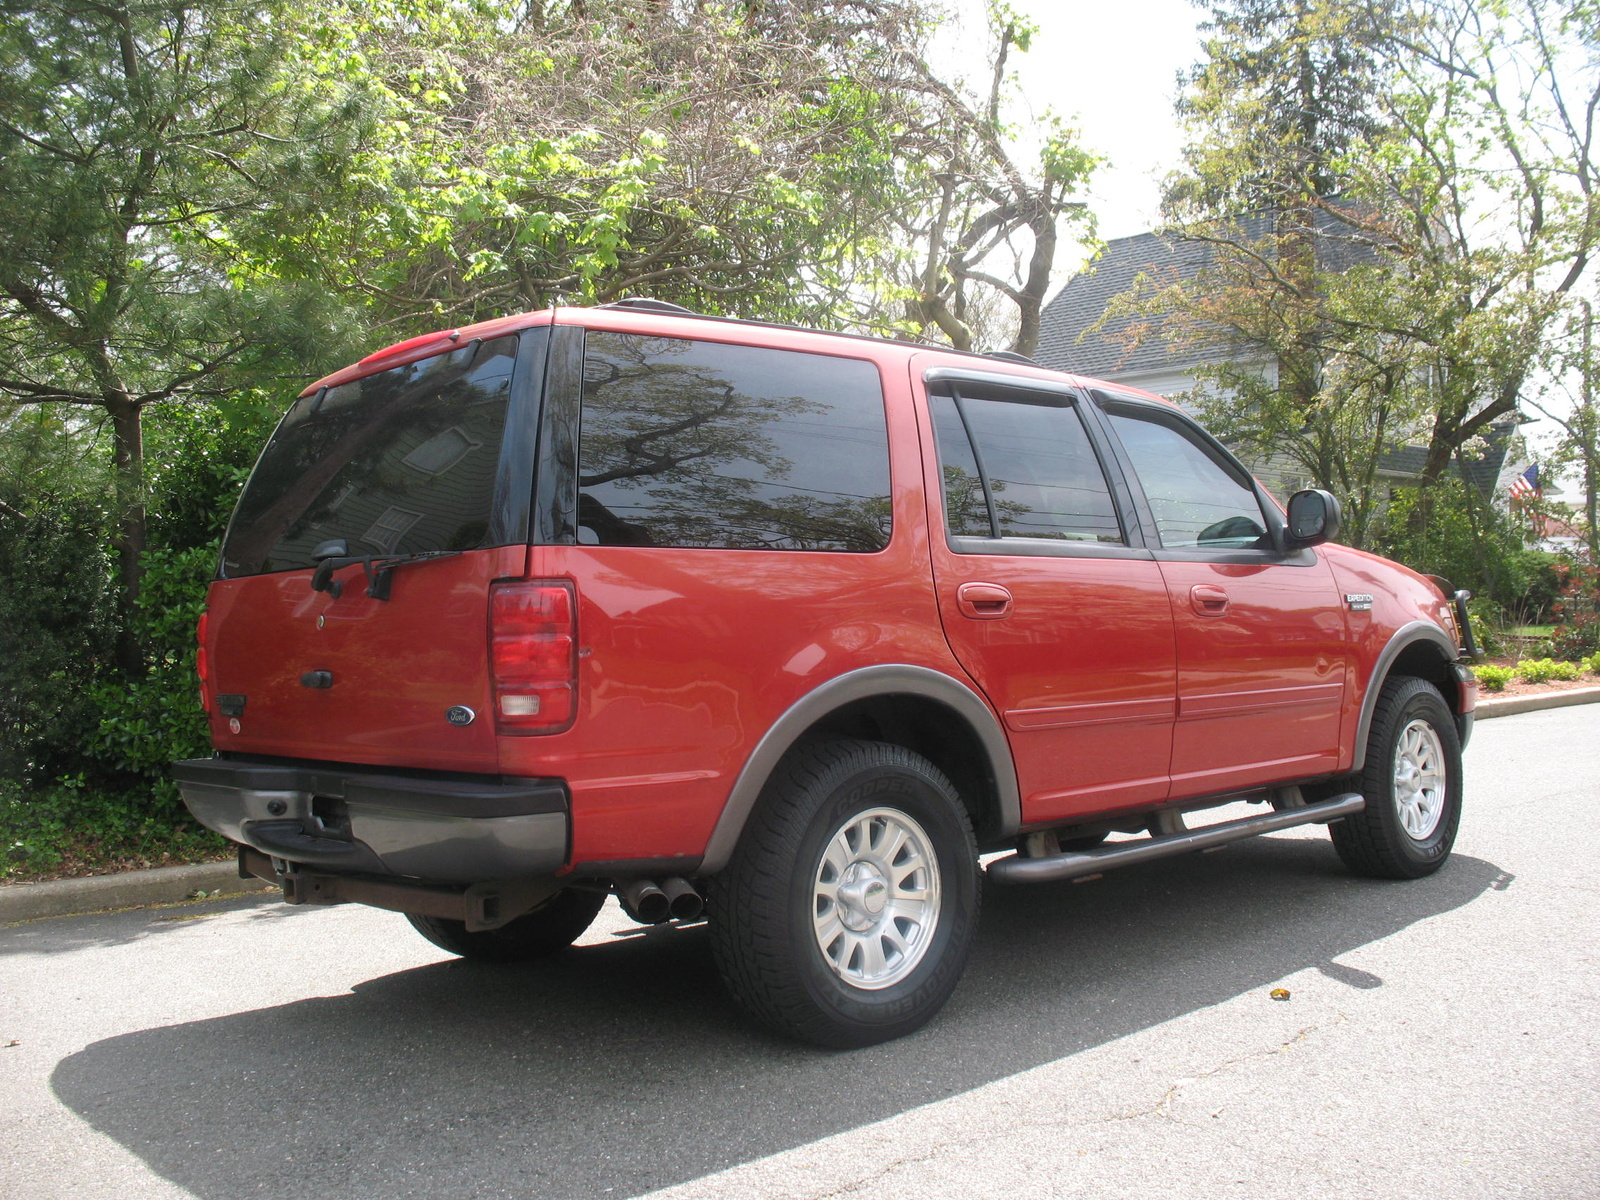 Ford expedition 2001 photo - 9